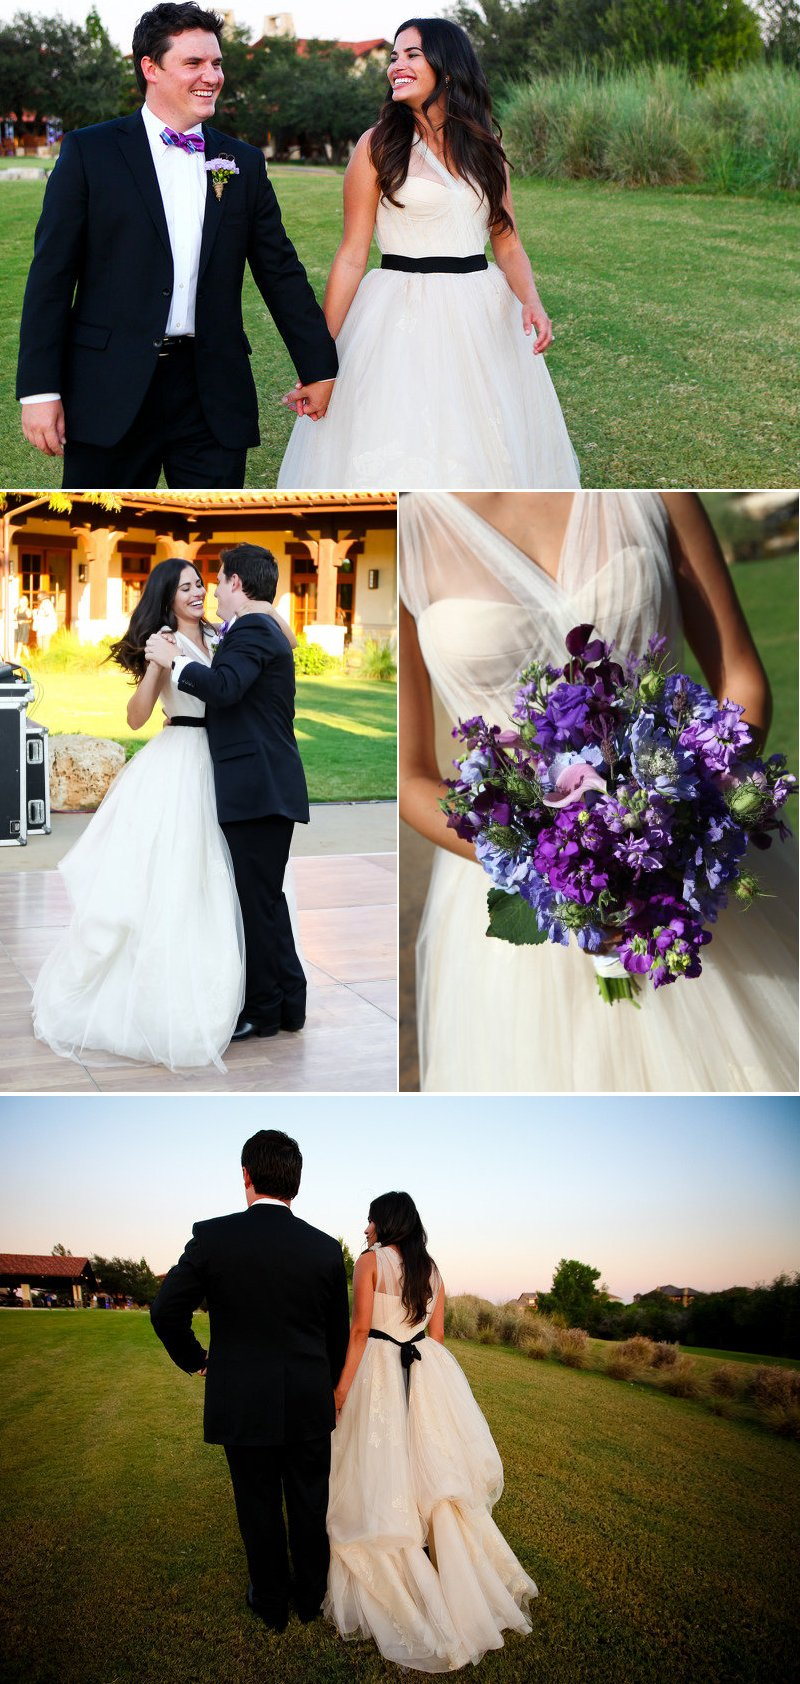 Vera-wang-wedding-dress-which-bride-wore-it-best-4.full